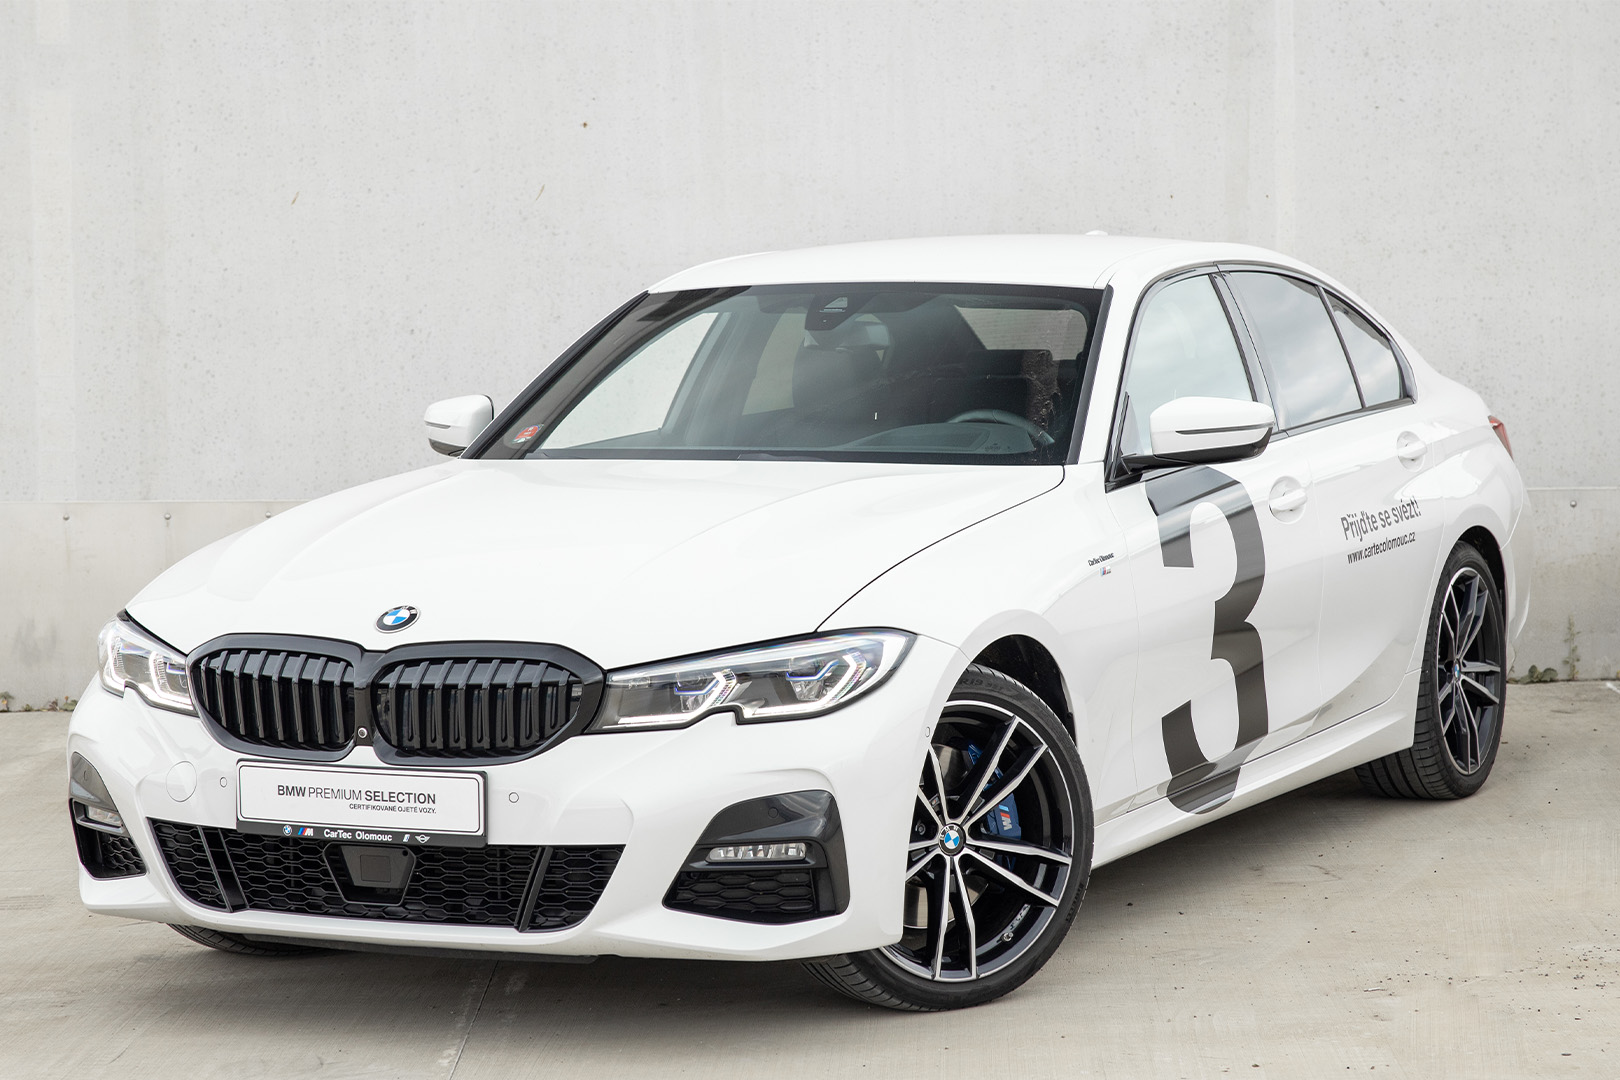 BMW 320d xDrive Limousine Model M Sport